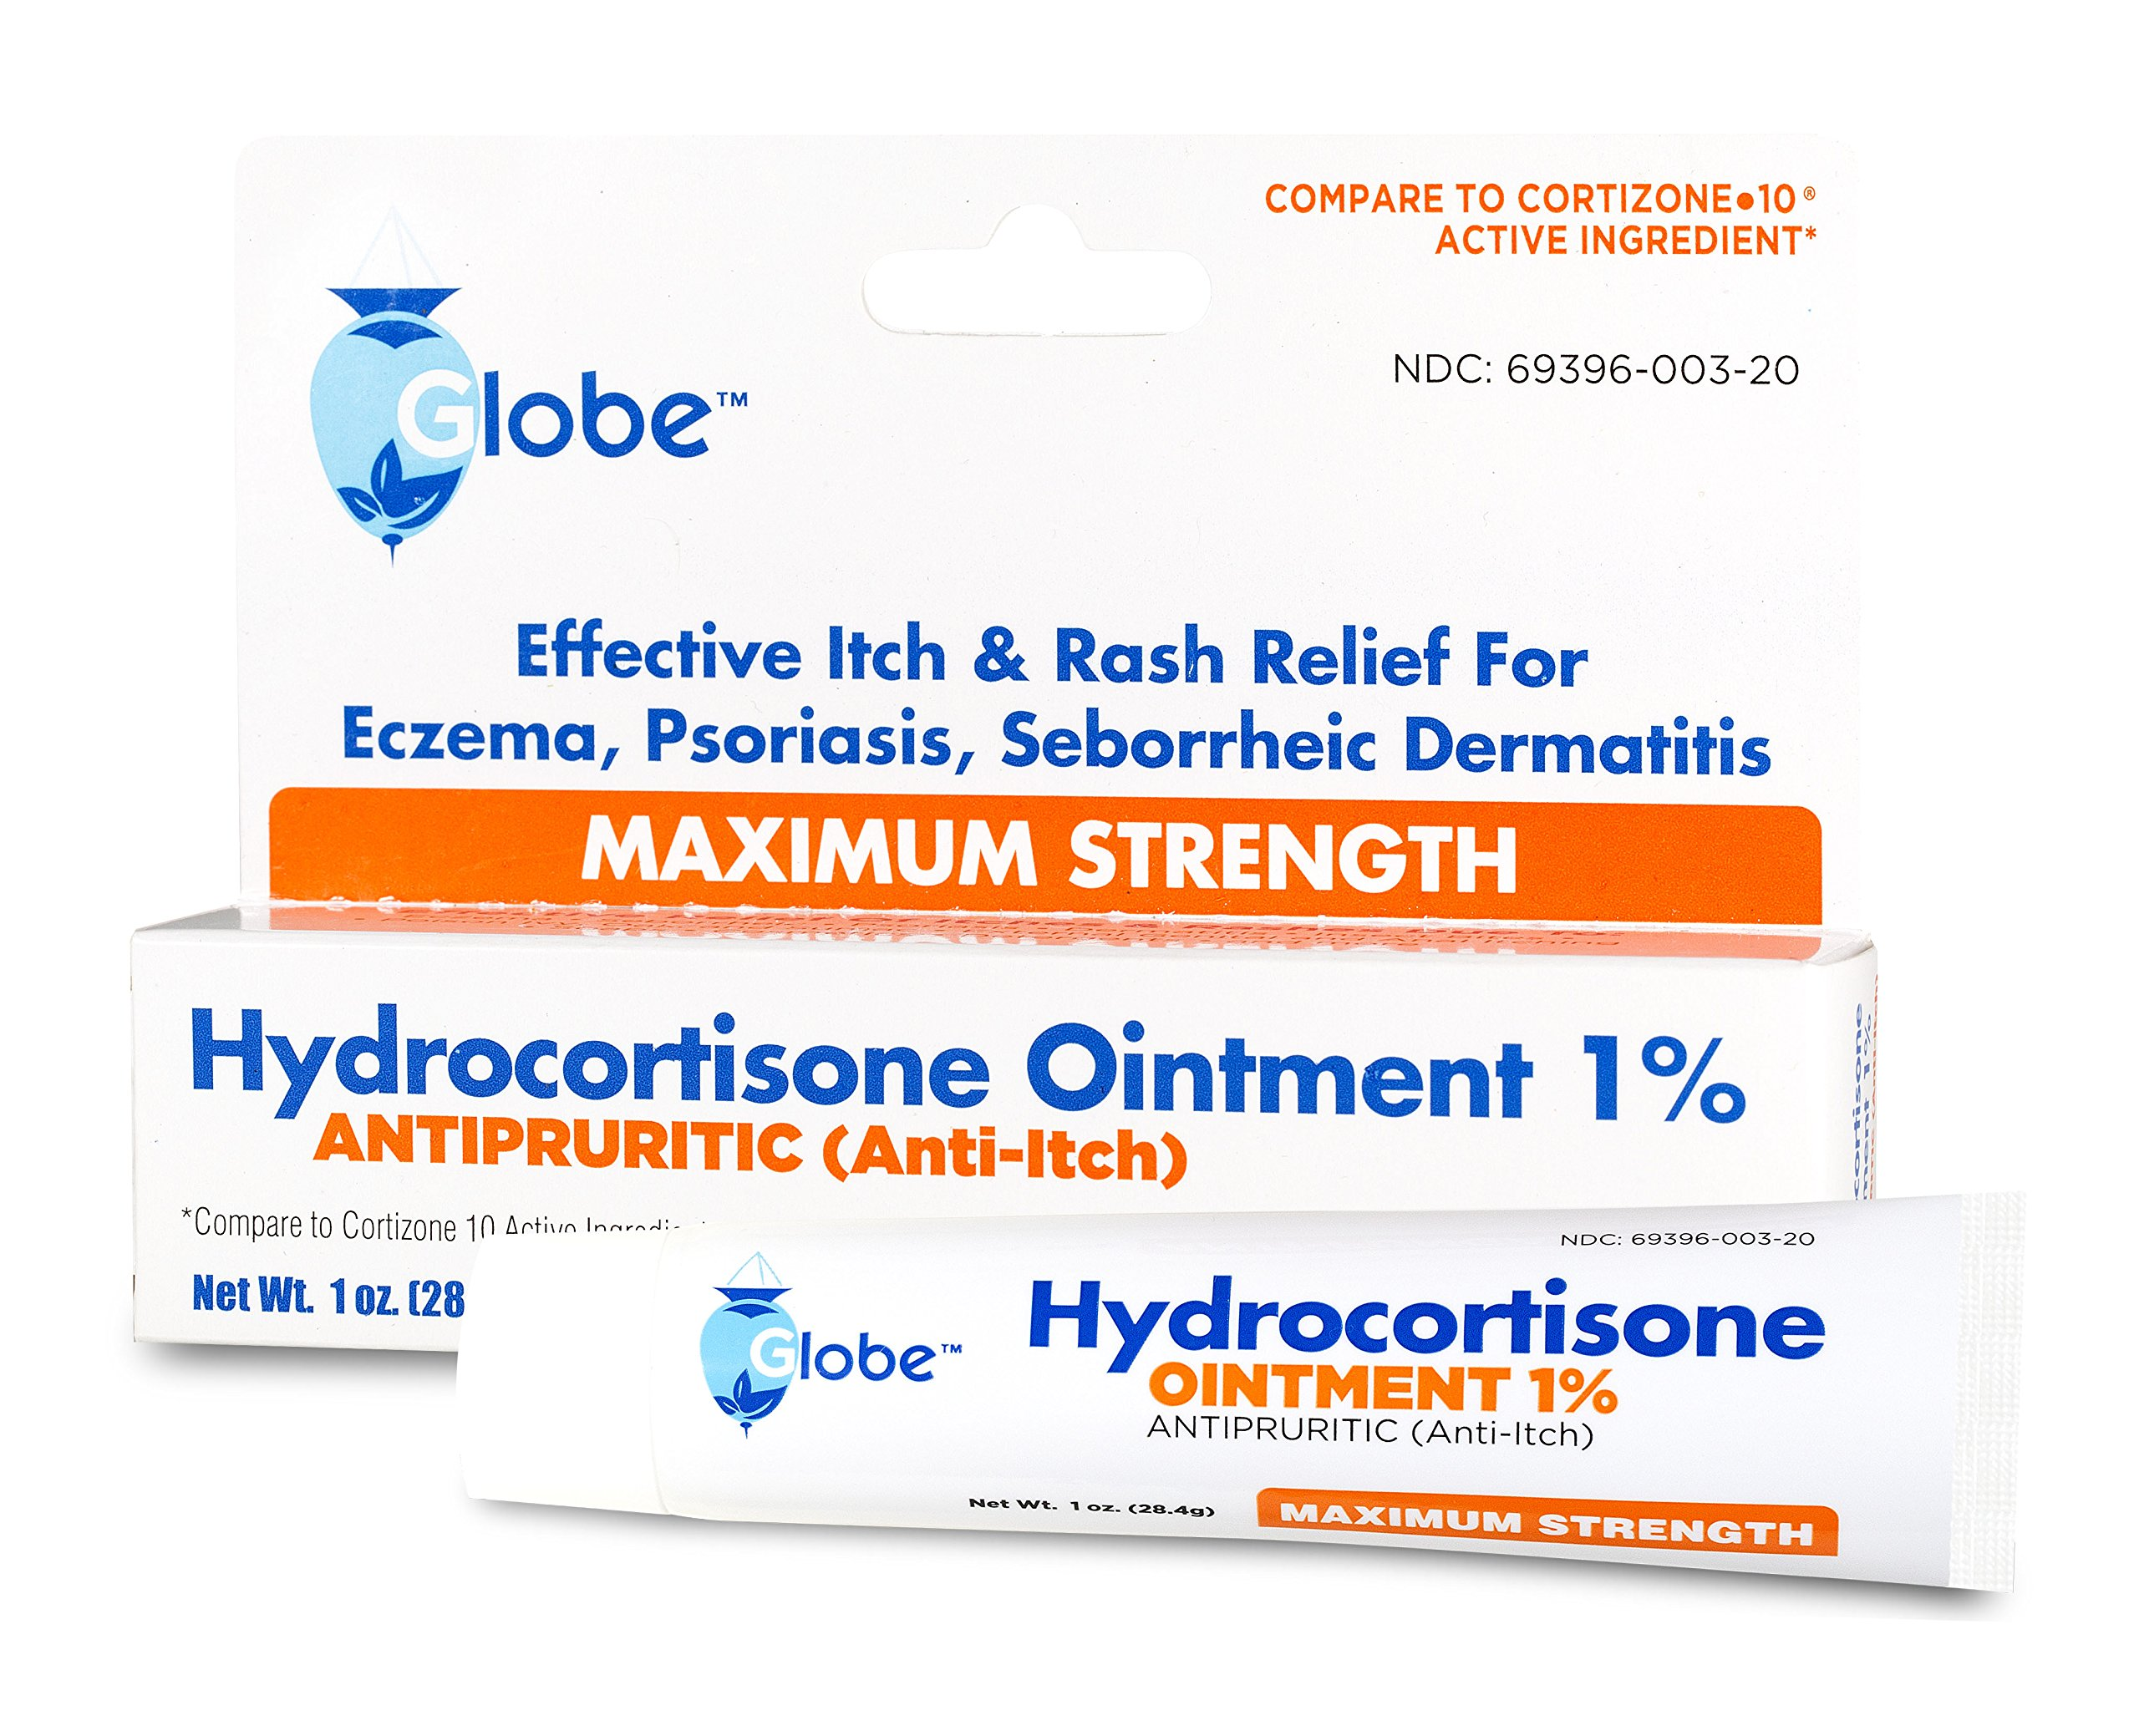 Hydrocortisone Maximum Strength Ointment 1%, USP 1 oz (Compare to the Active Ingredients in Cortizone-10) (180 Tubes/Carton) Distributors Price by Globe